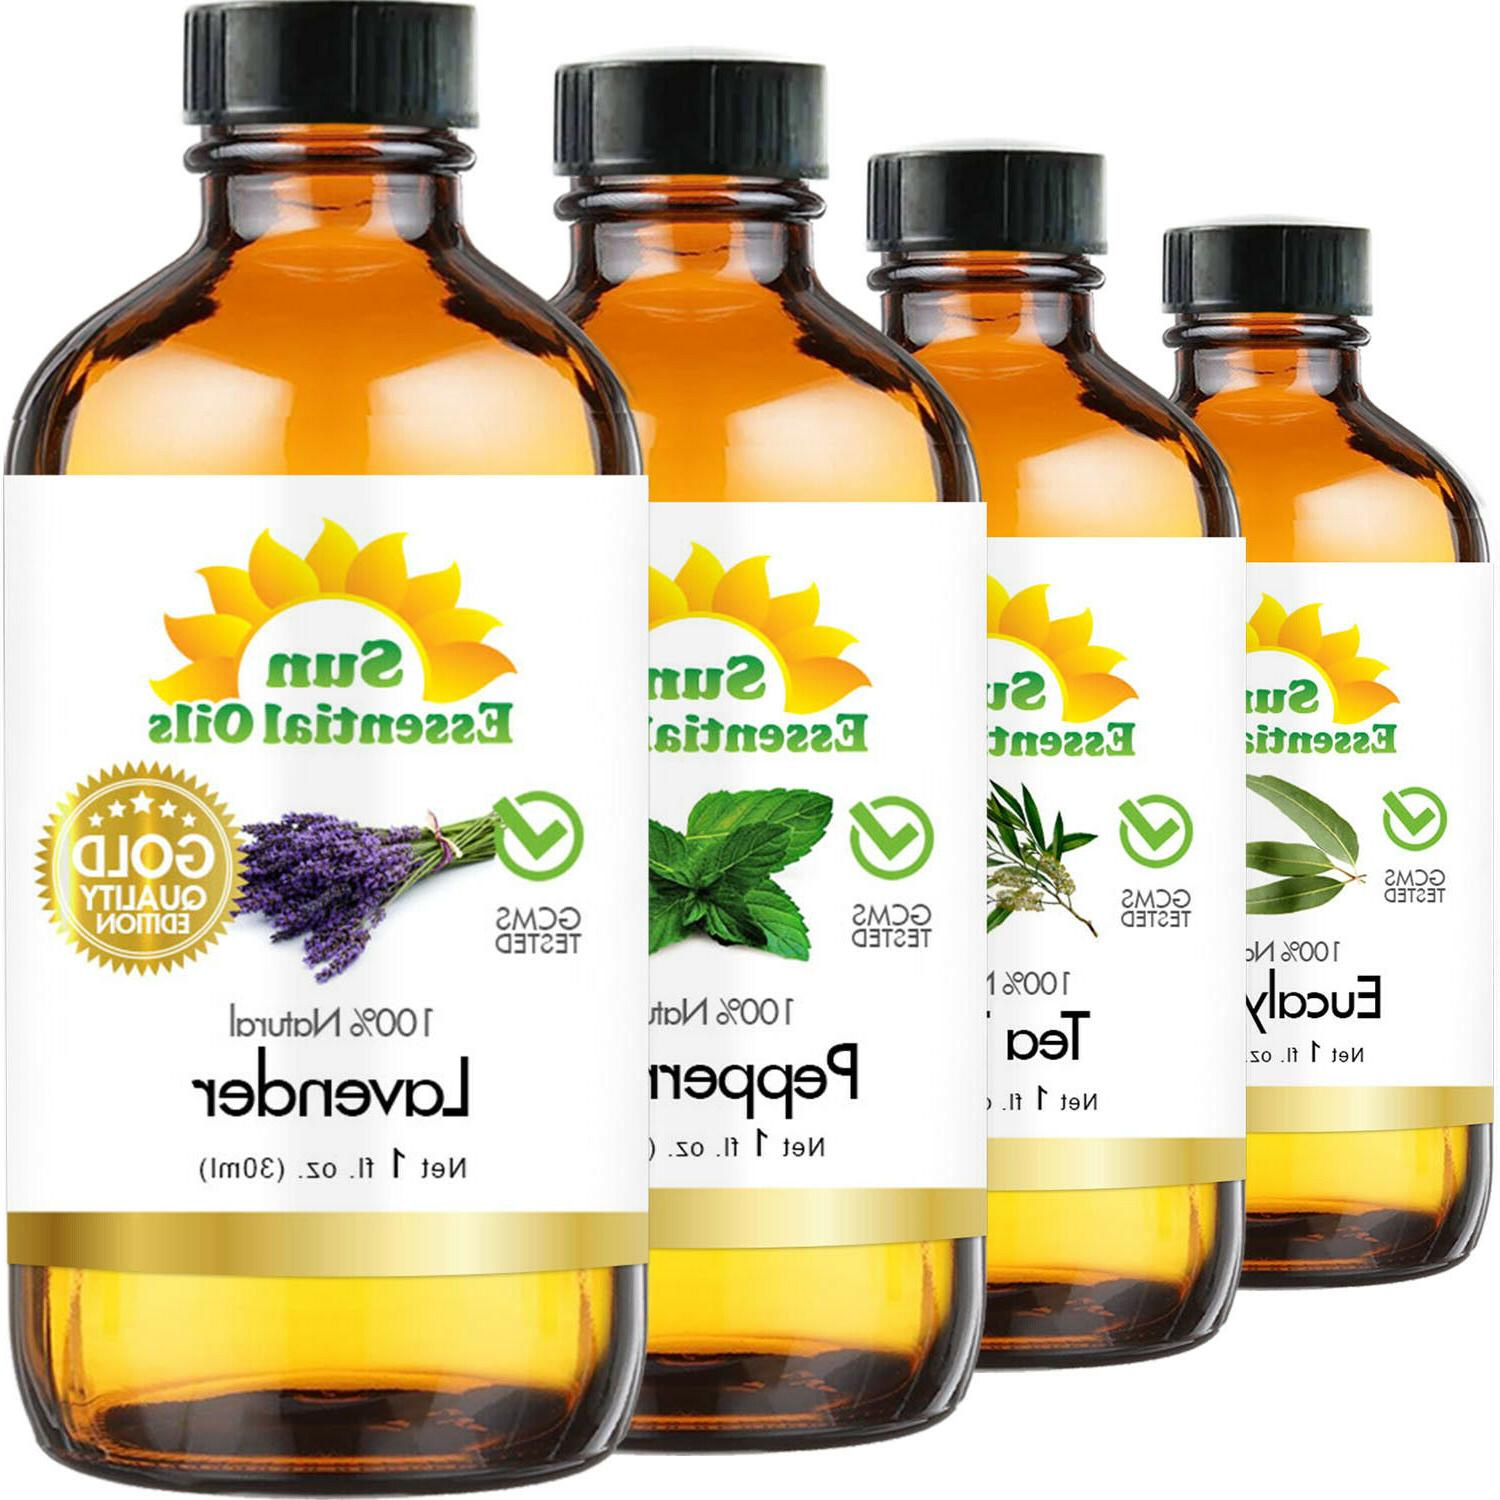 Essential - Pure and Natural - Therapeutic Oil!